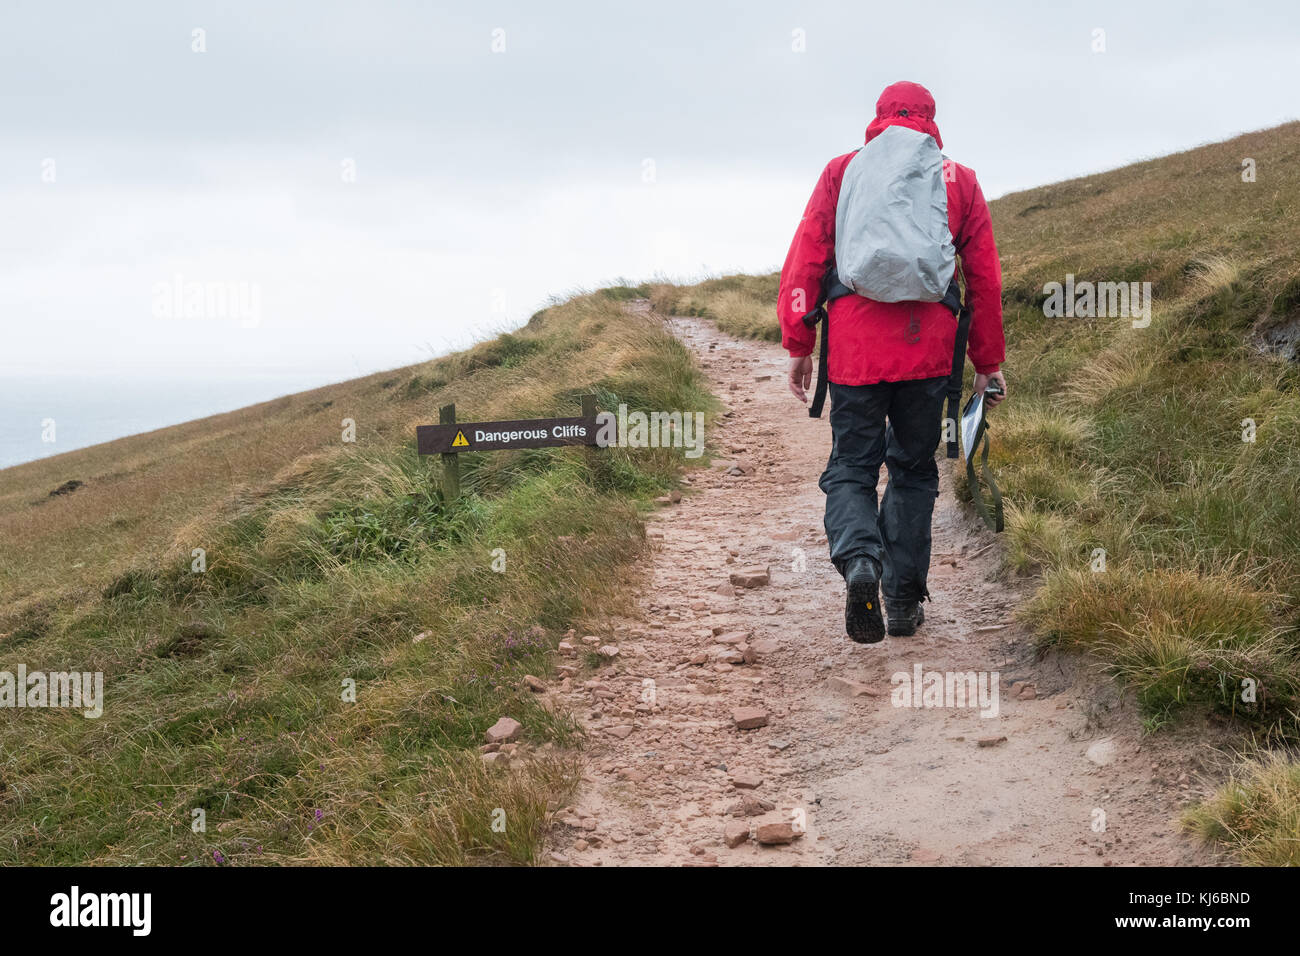 man walking on Old Man of Hoy footpath in wind and rain passing dangerous cliffs sign, Hoy, Orkney, Scotland, UK - Stock Image